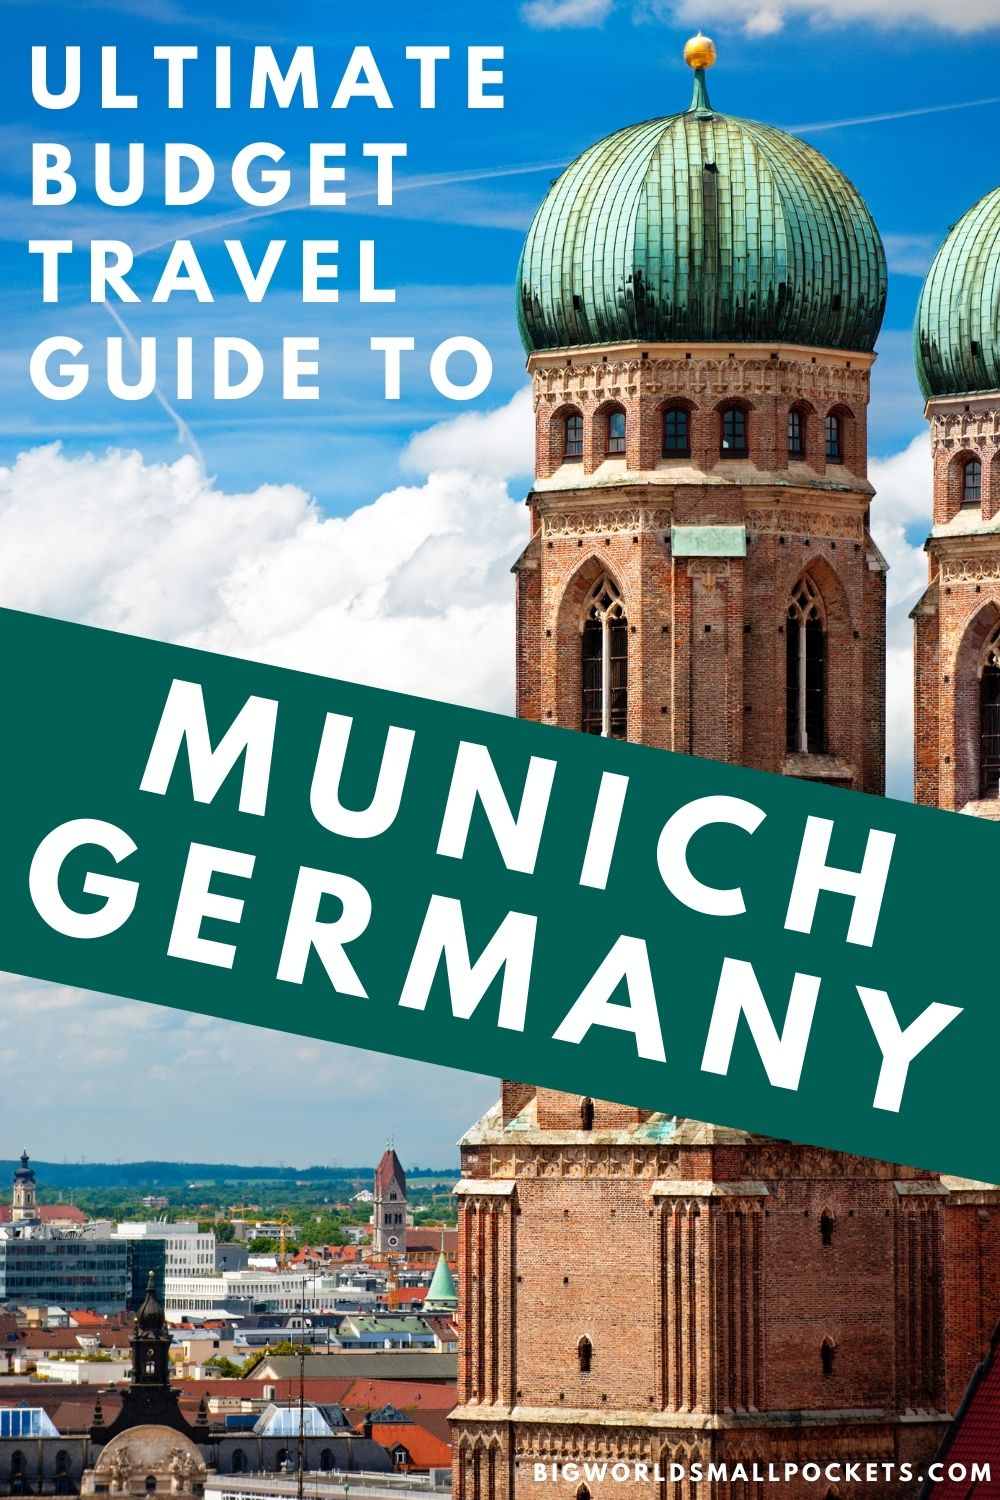 Ultimate Budget Travel Guide to Munich, Germany